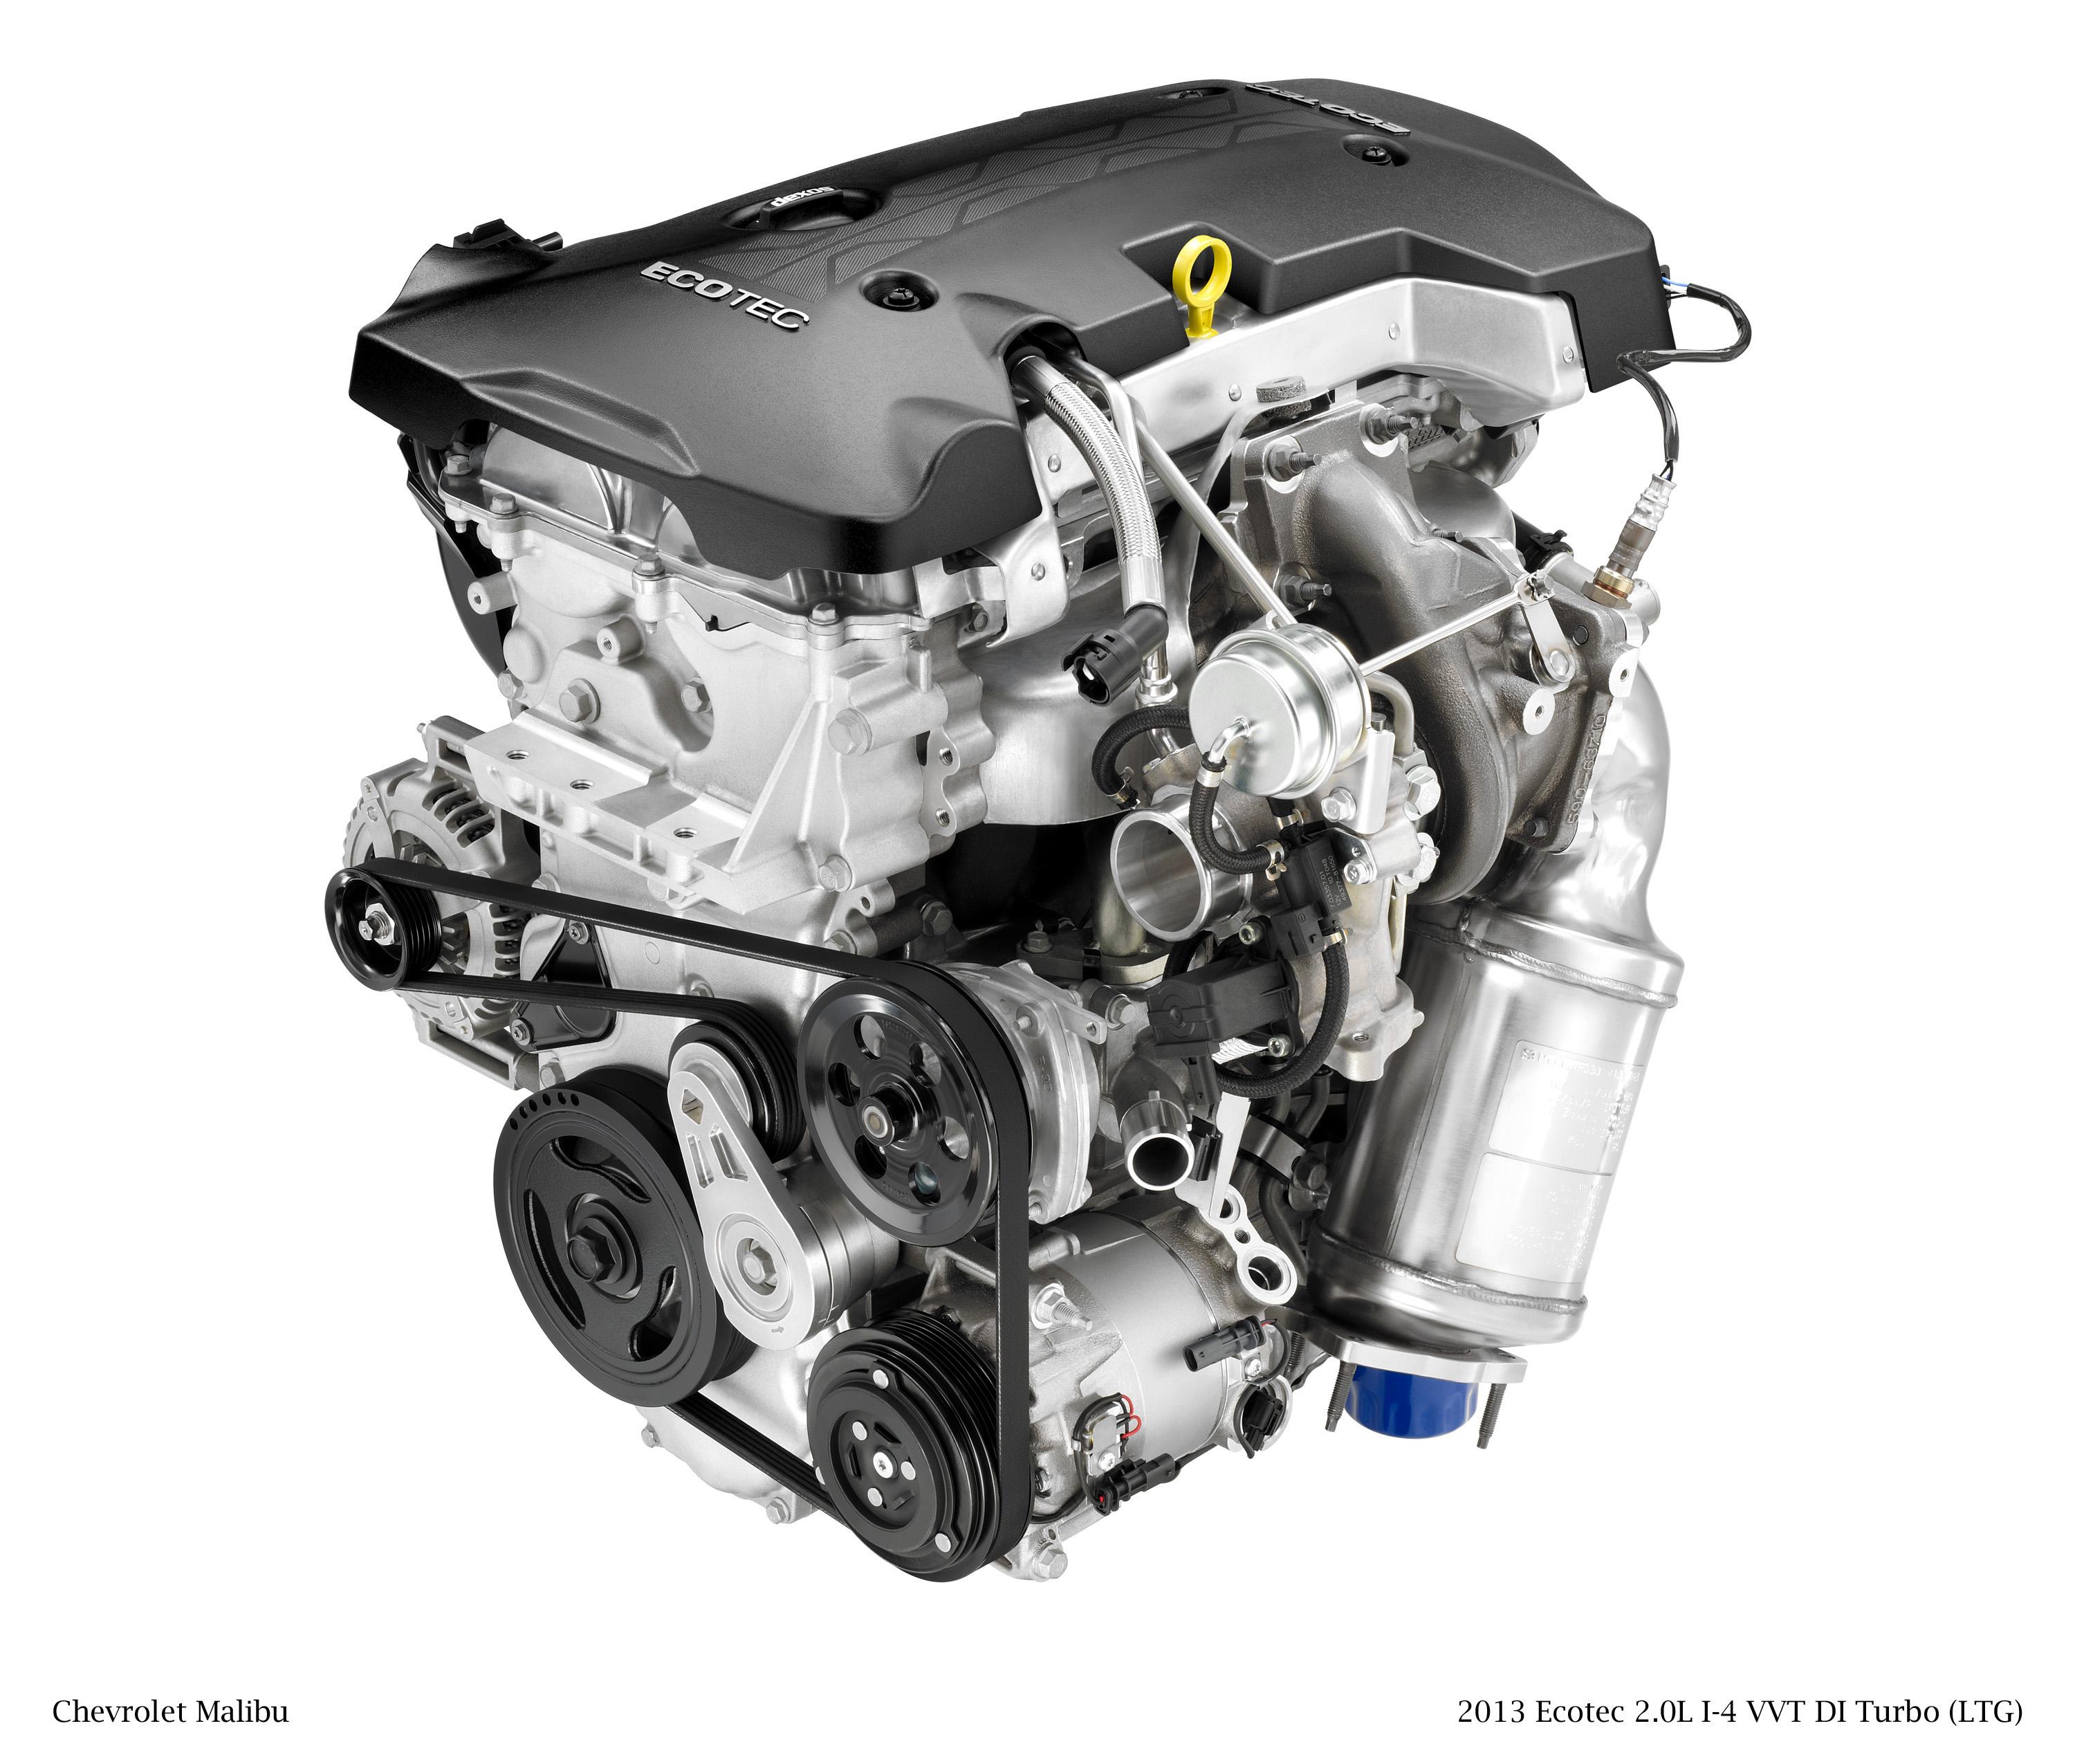 [ZTBE_9966]  New 2.0L Turbo Engine Gives the 2013 Chevrolet Malibu Enhanced Performance  and Refinement | 2013 Chevy Malibu Engine Diagram |  | Chevrolet Pressroom - Chevy